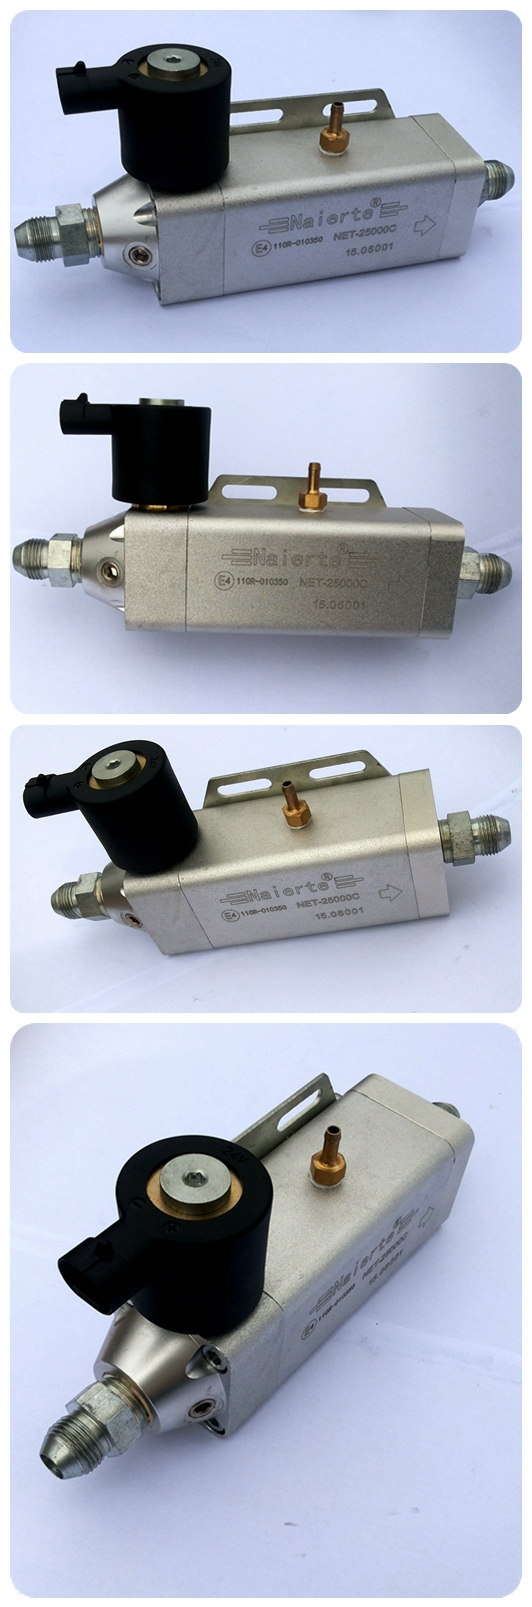 CNG auto universal adjustable air pressure regulator from China supplier